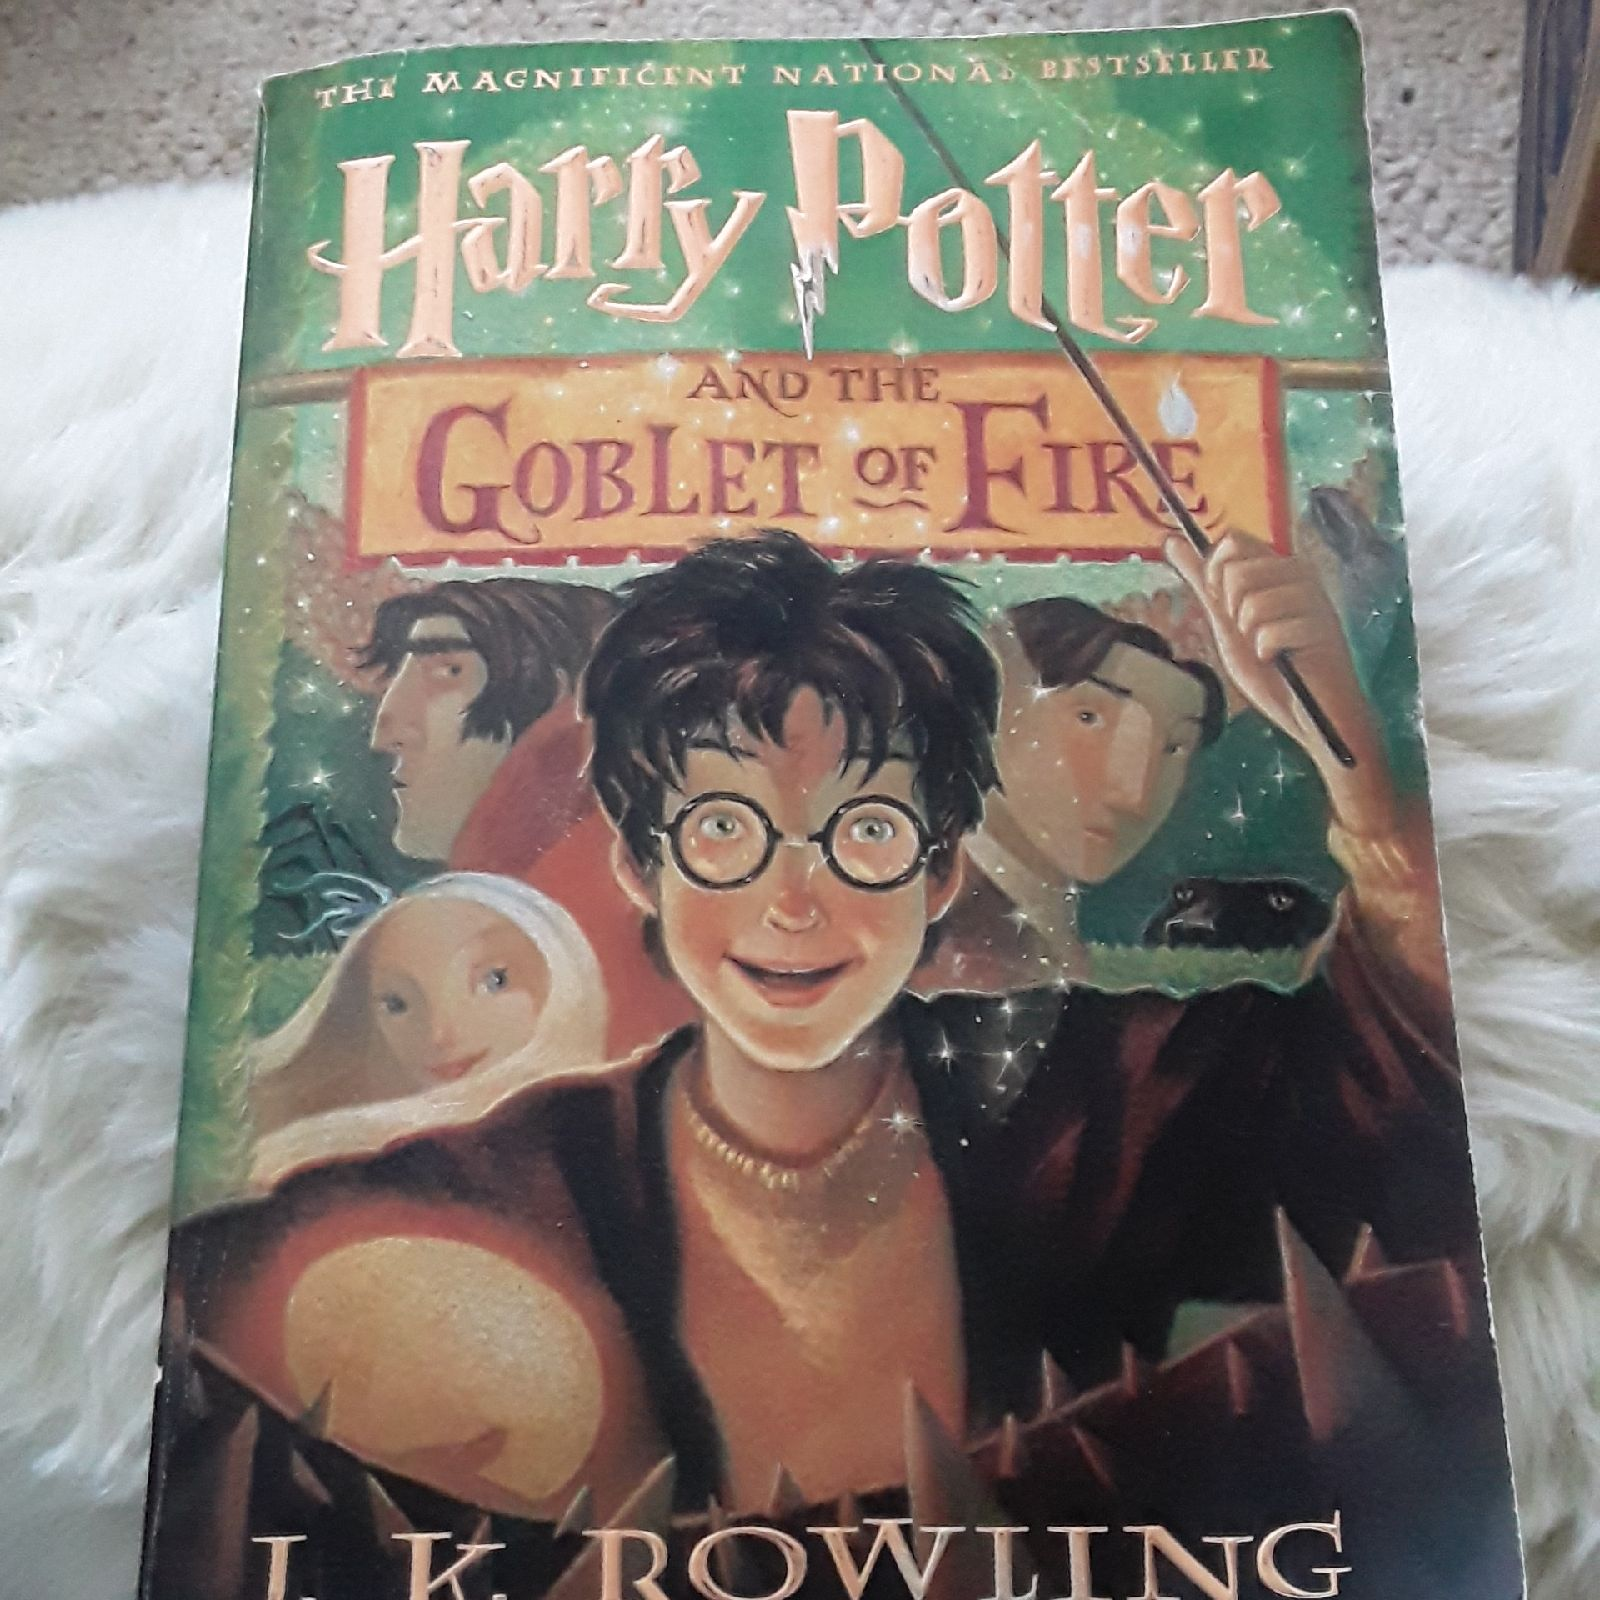 Harry Potter and the Goblet